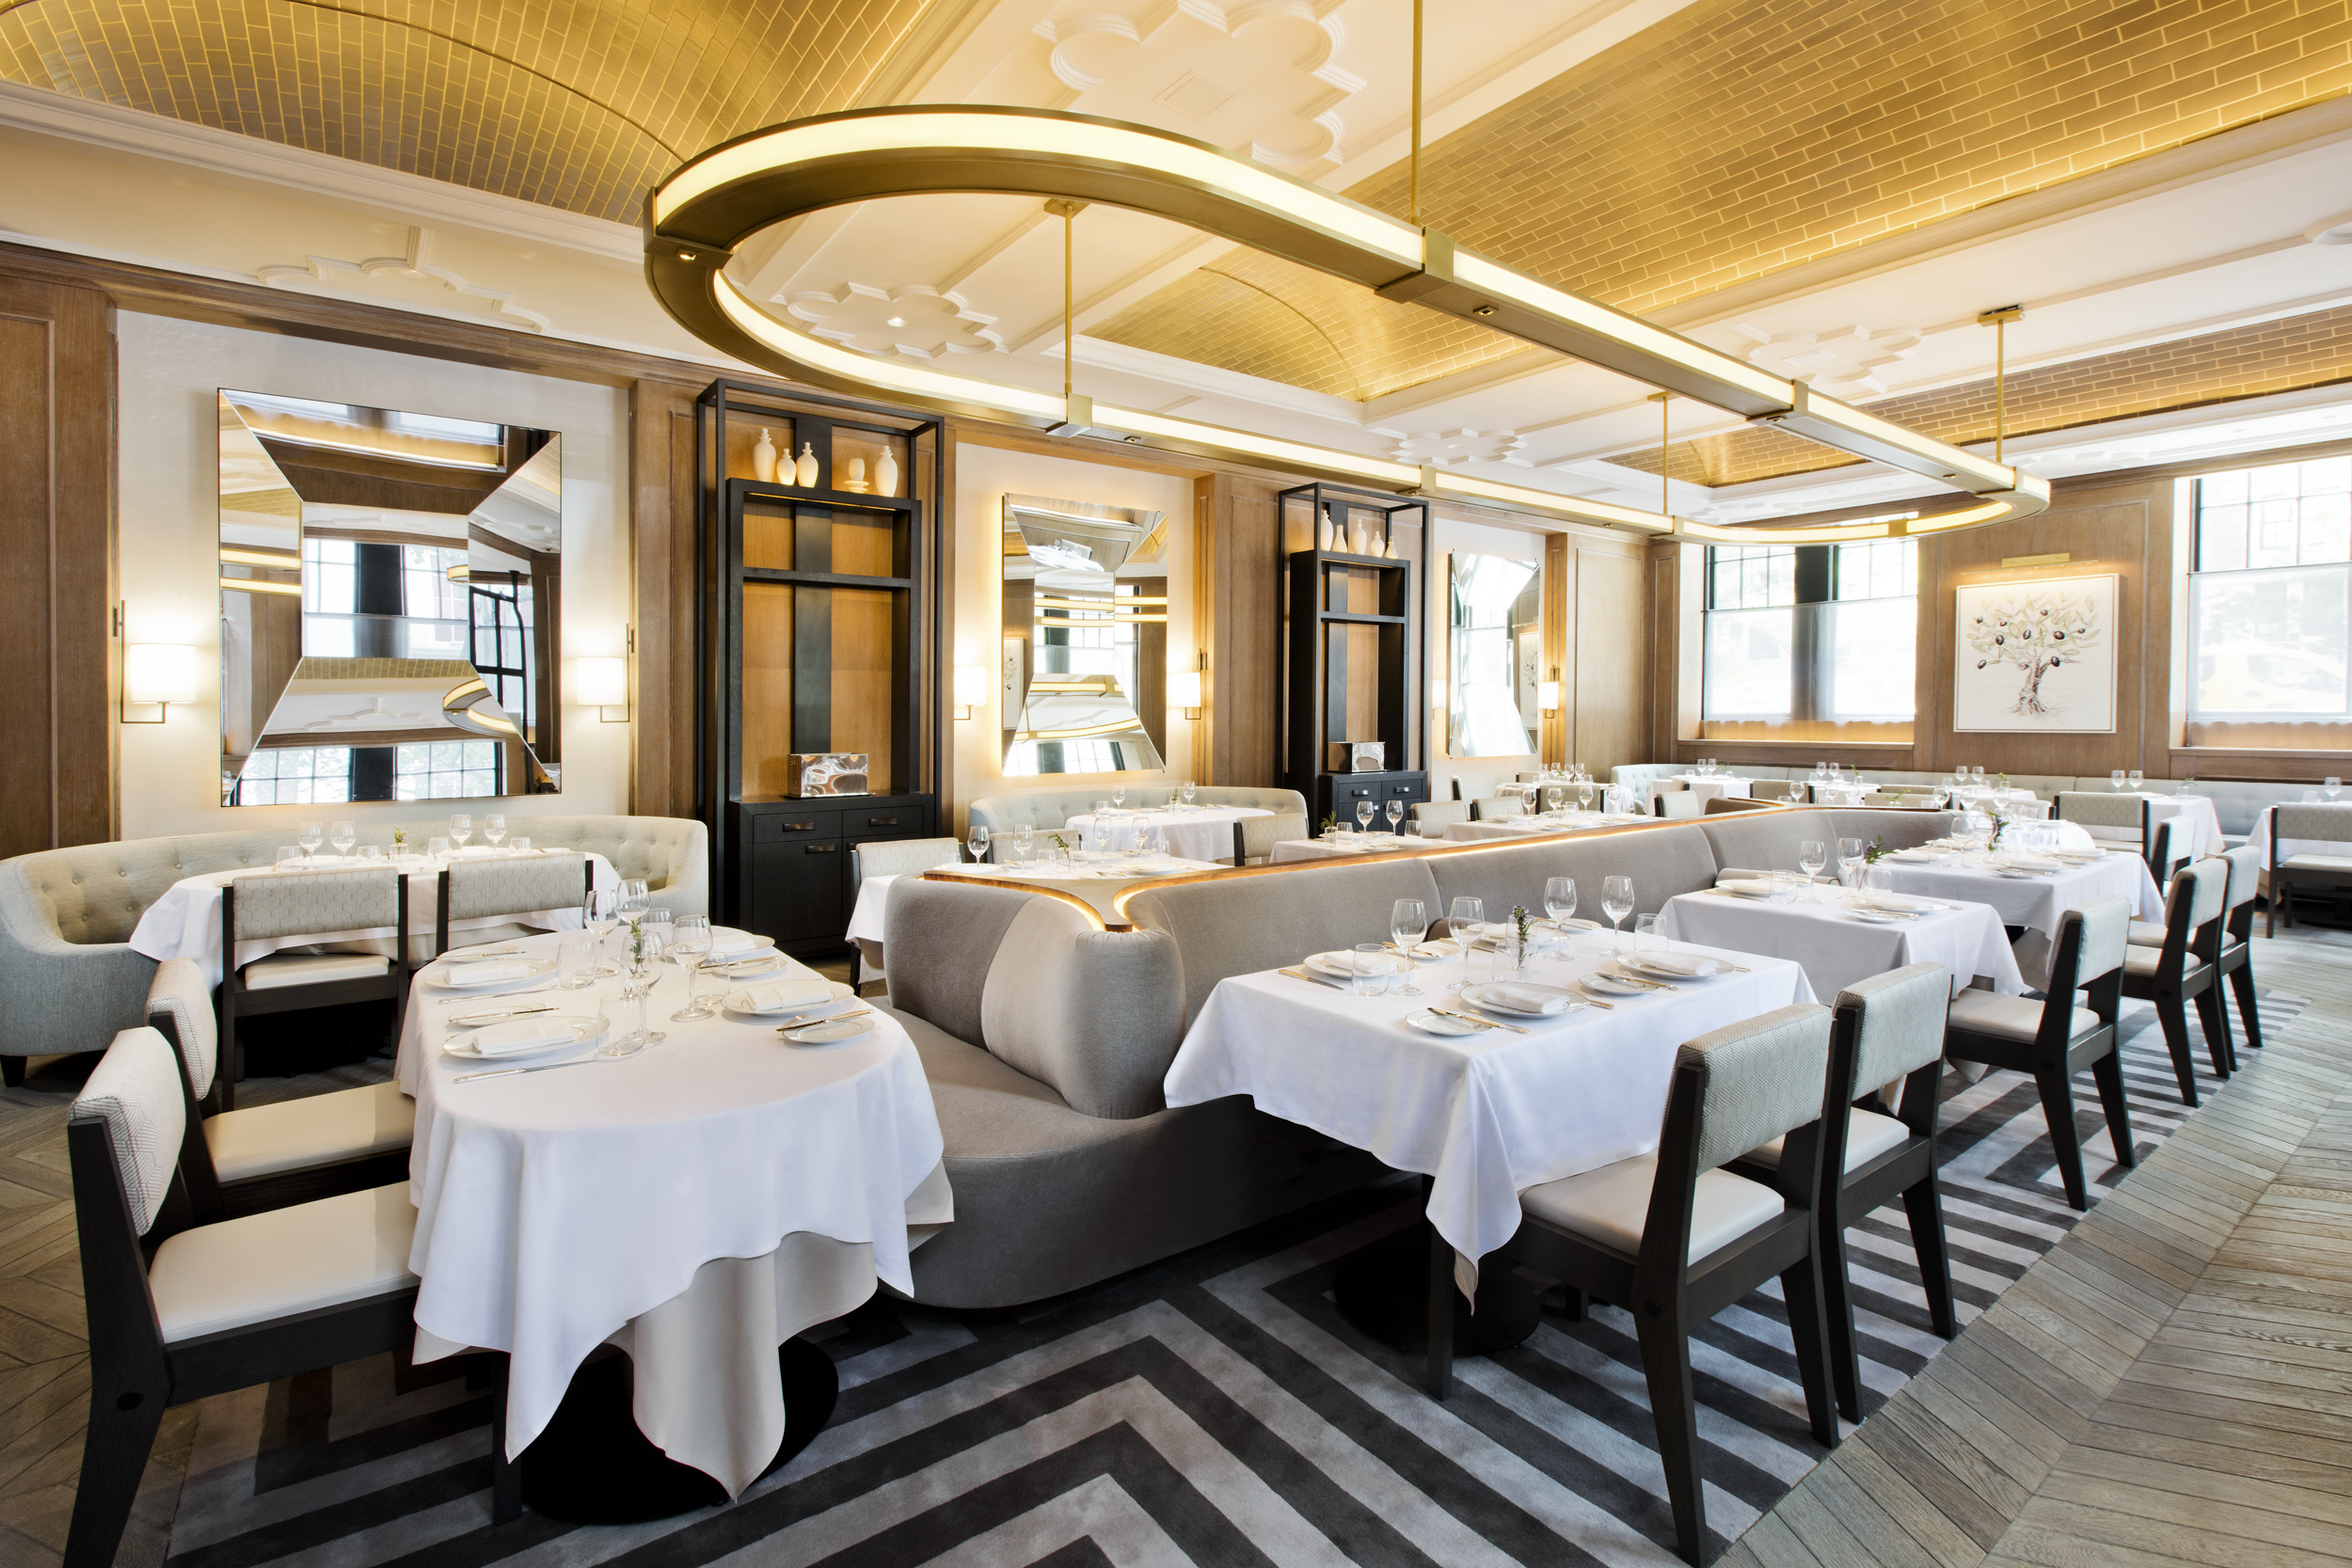 Full Restaurant Buyout event space at Vaucluse in New York City, NYC, NY/NJ Area